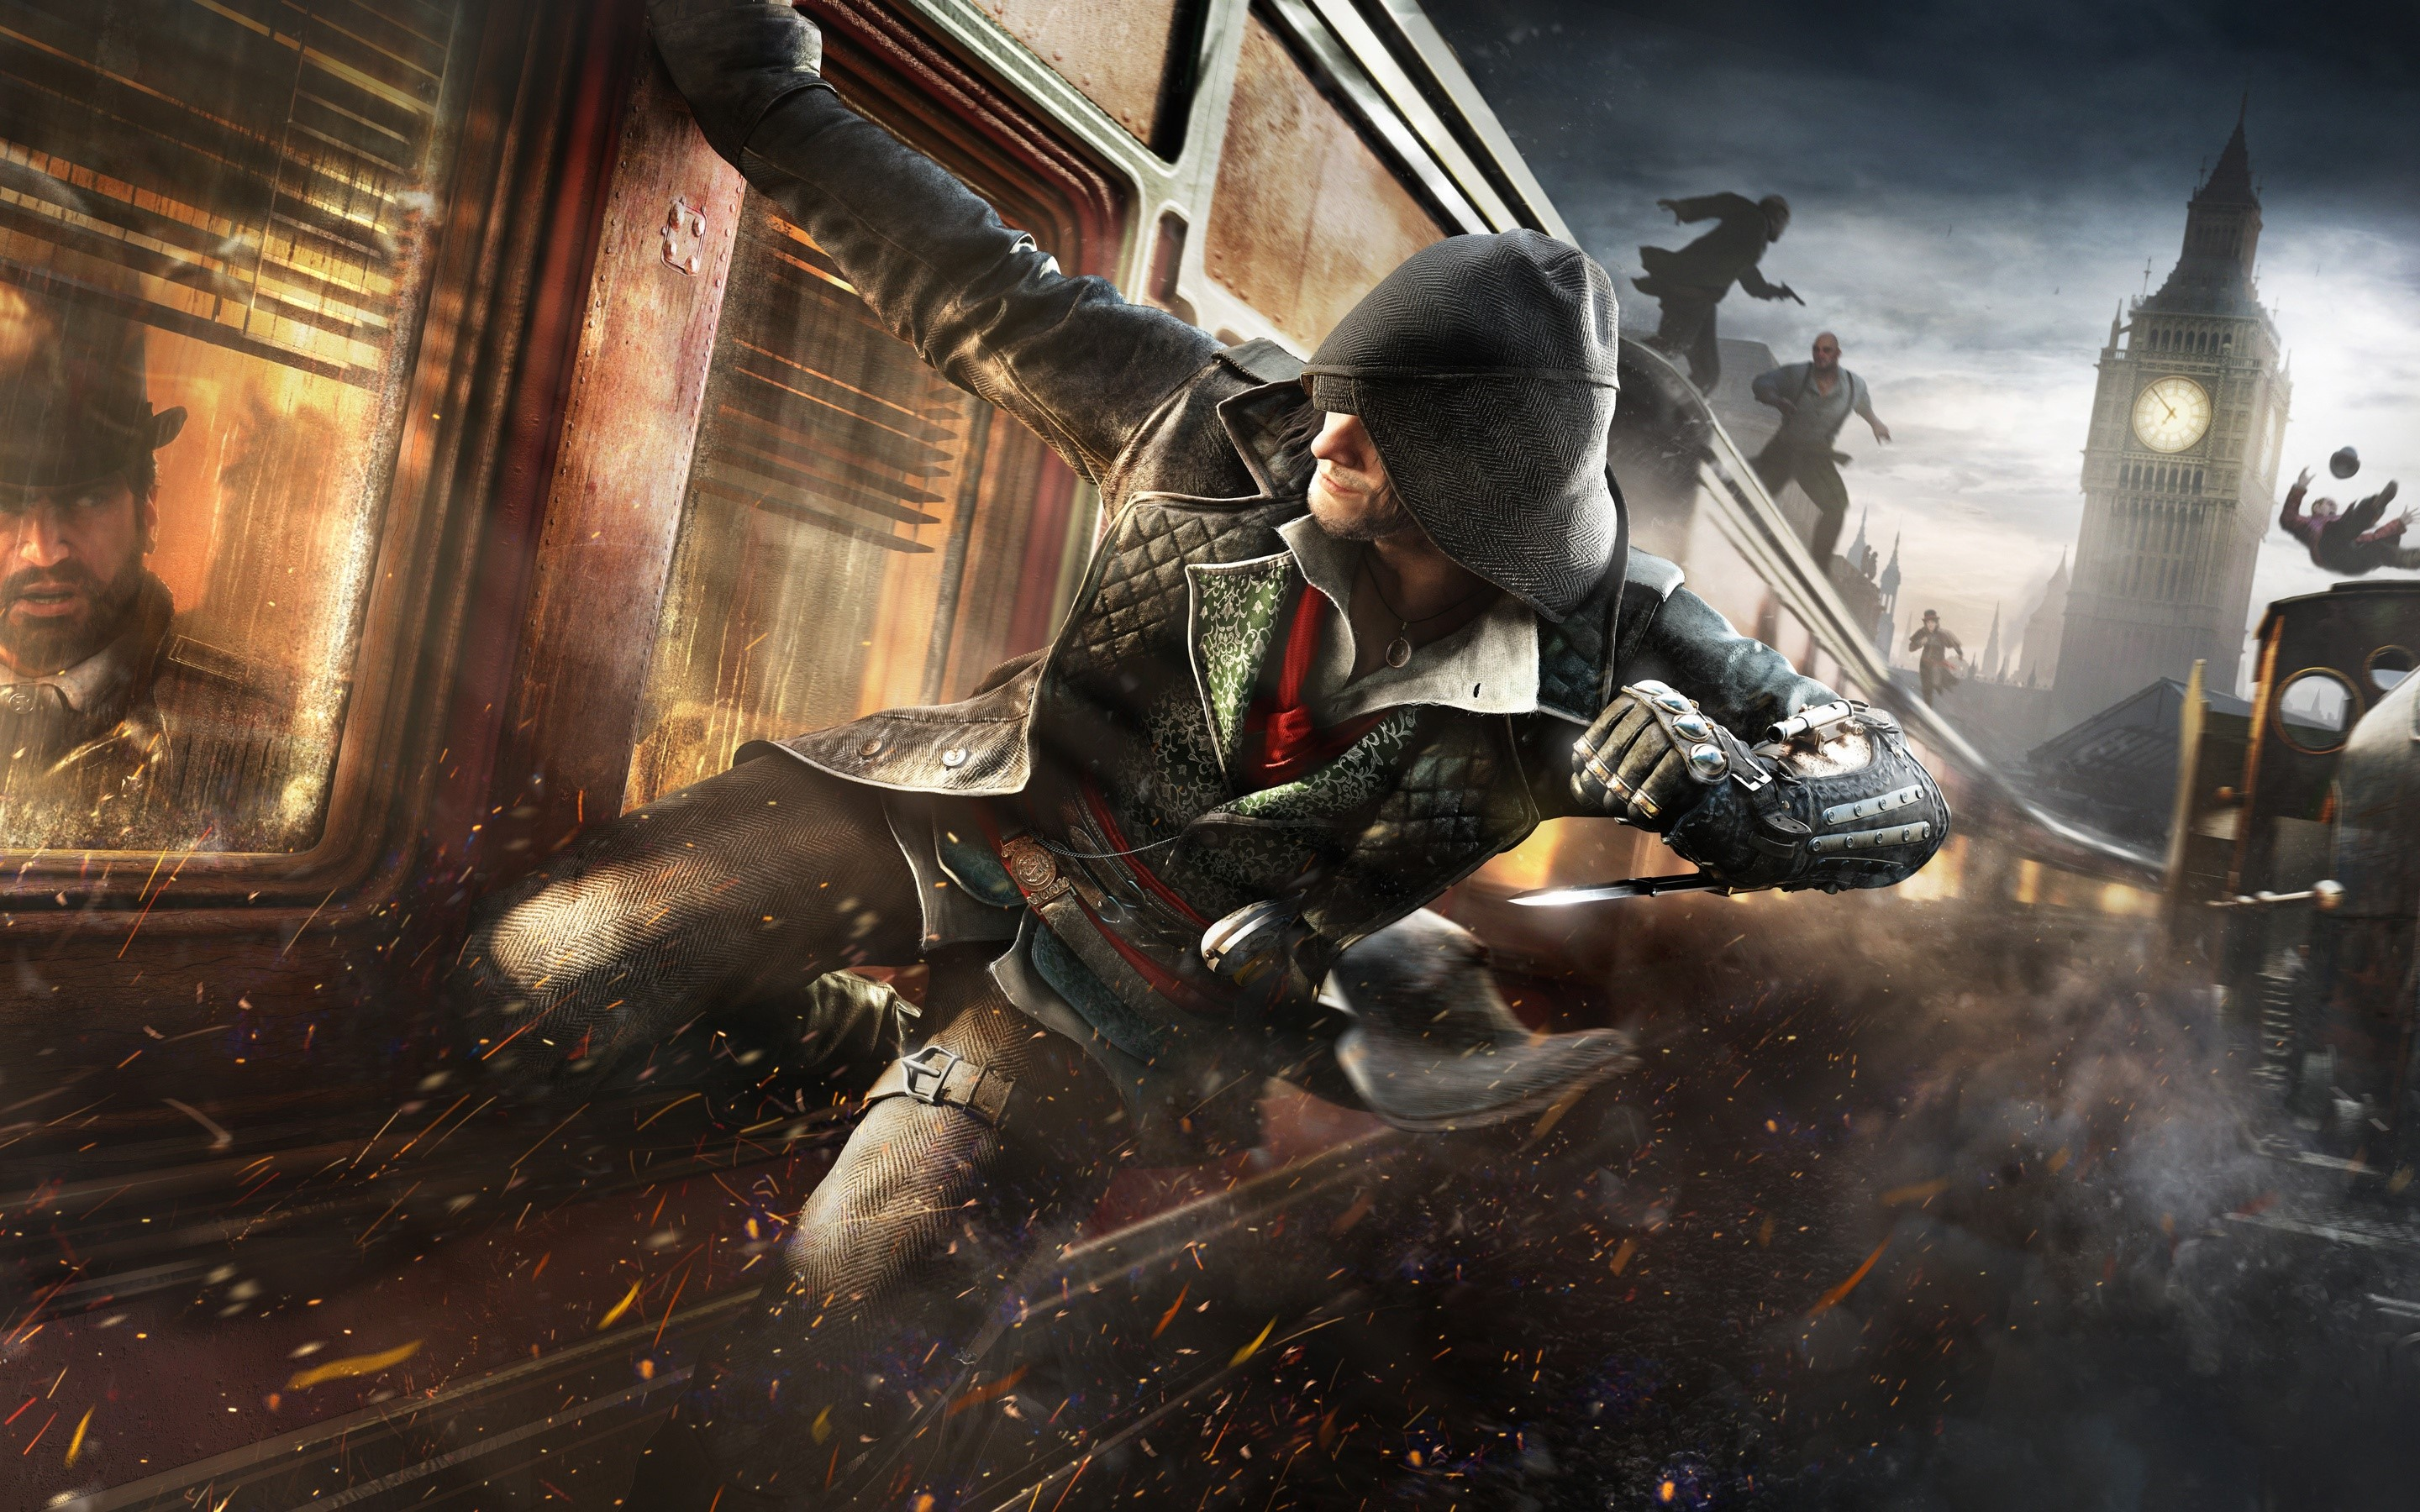 Fondos de pantalla Videojuego Assassins Creed Syndicate